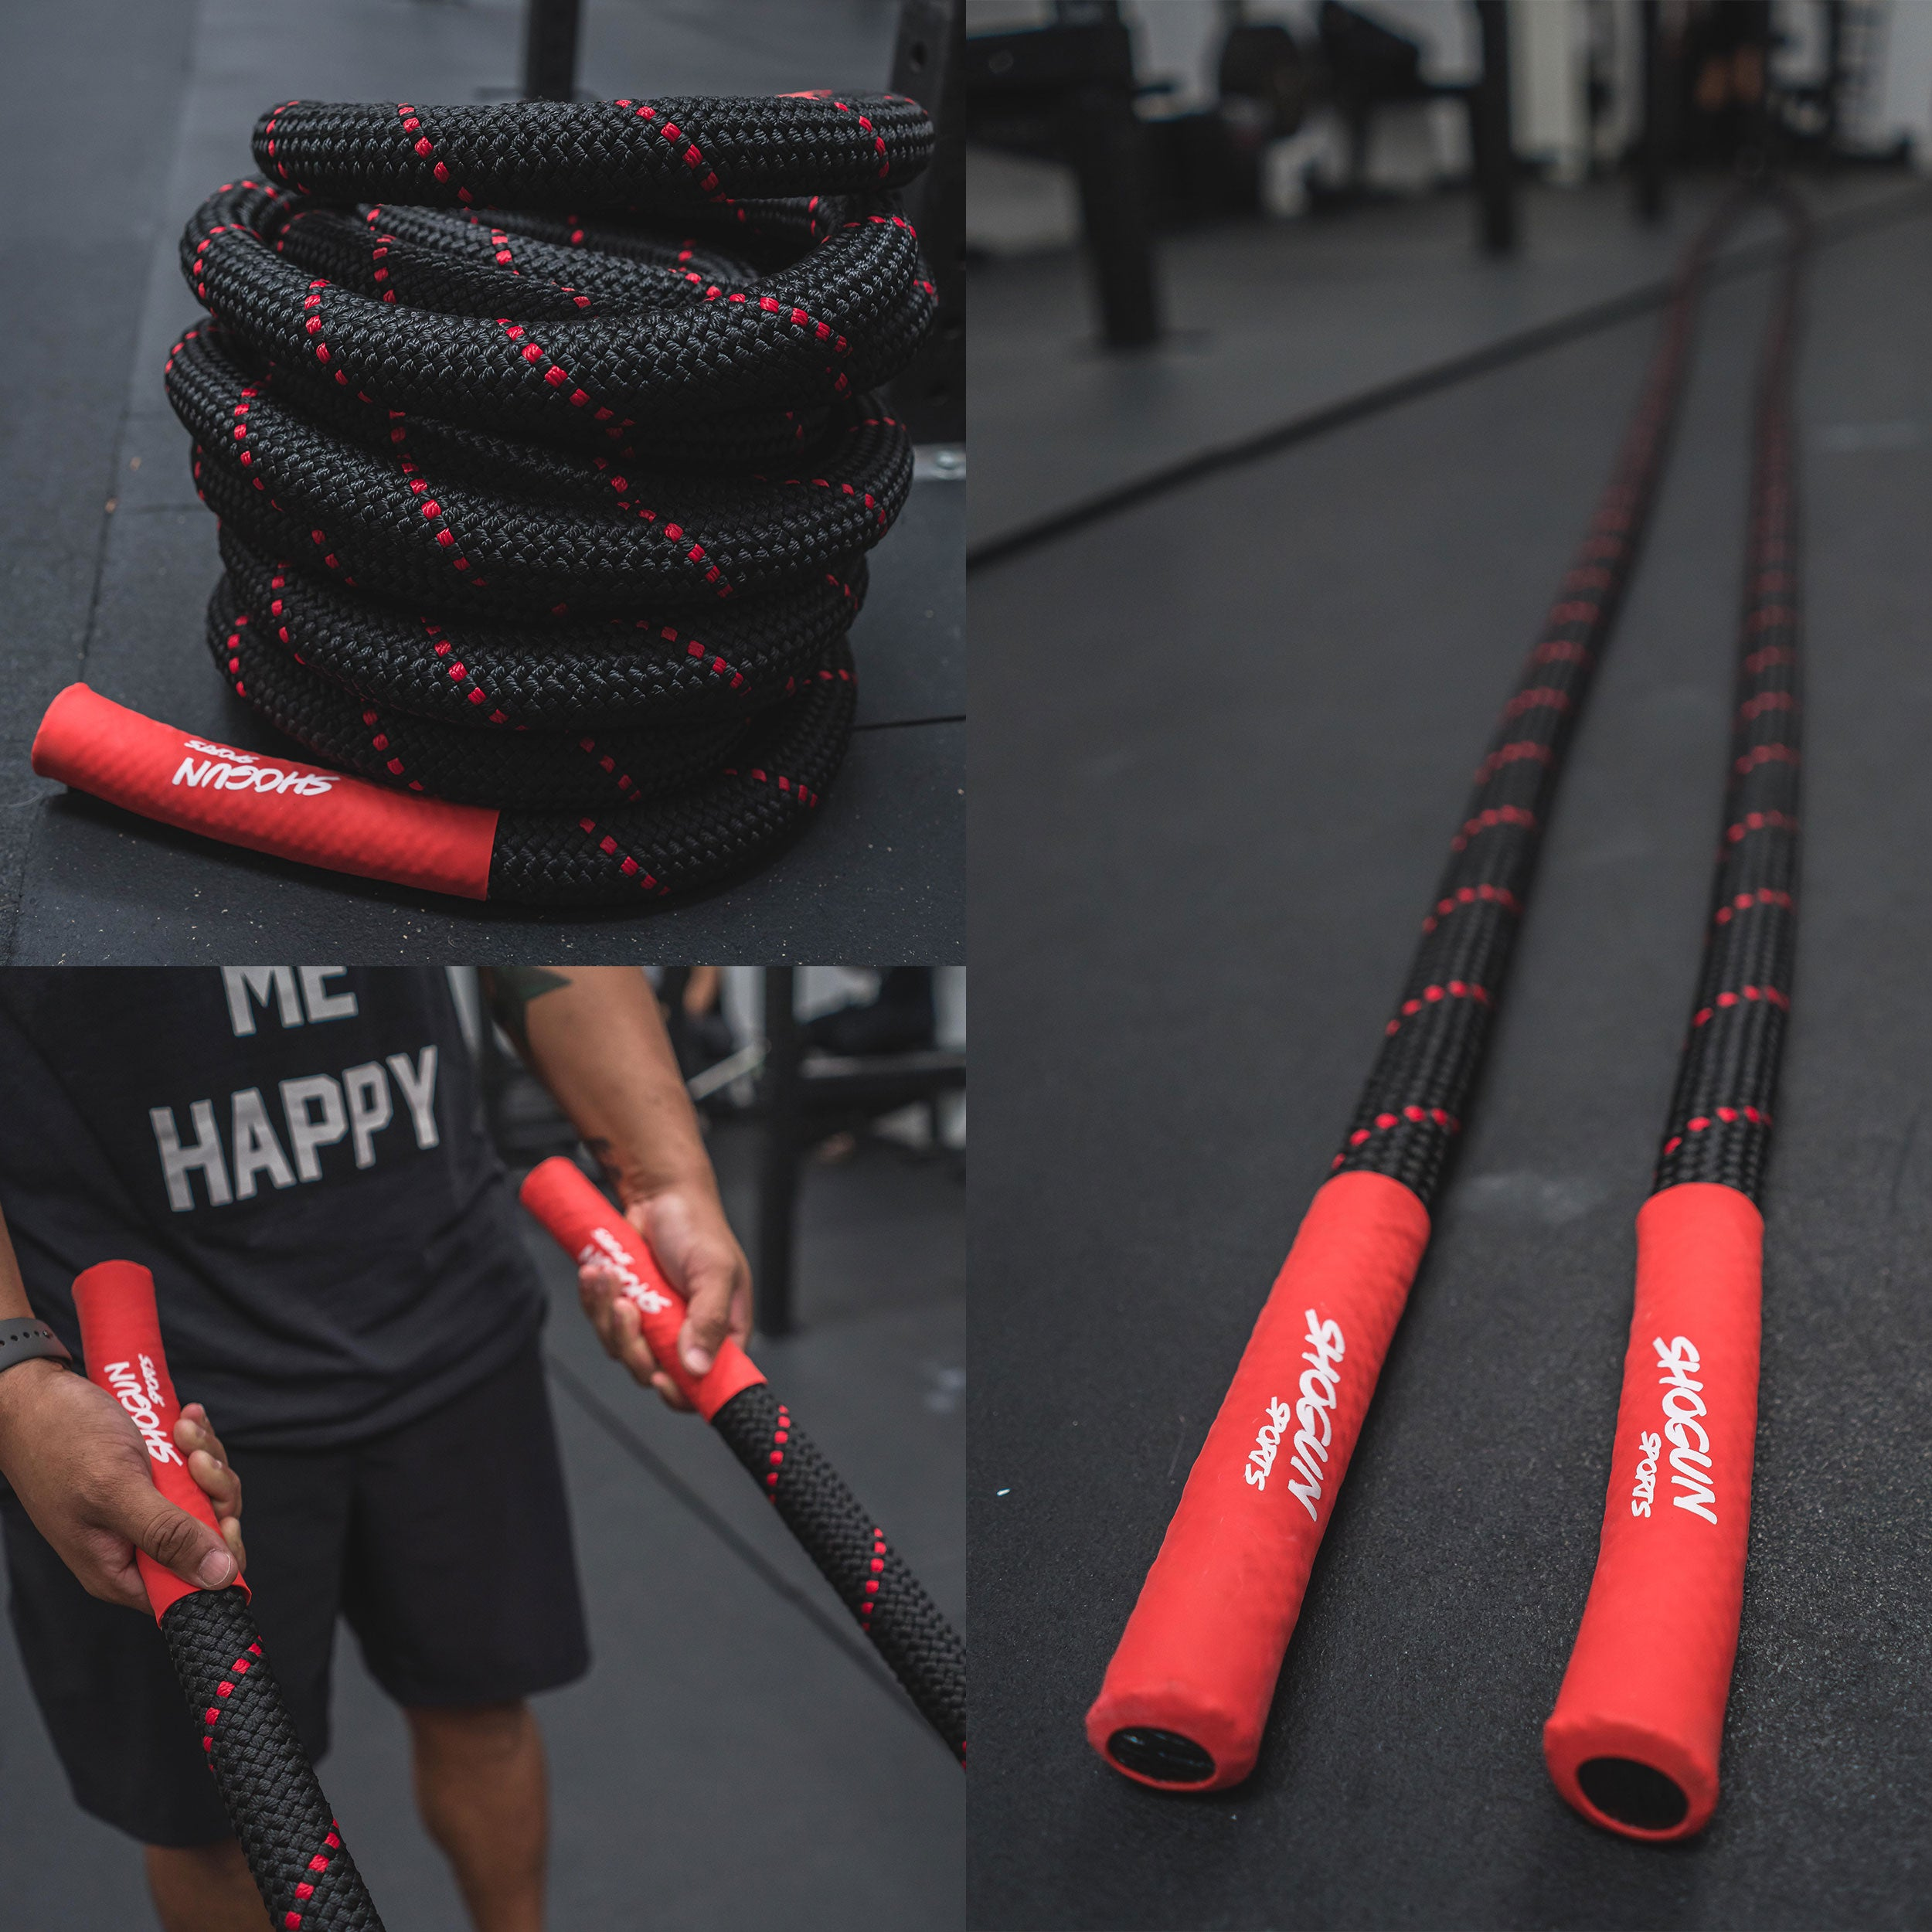 Shogun Sports Braided Battle Ropes